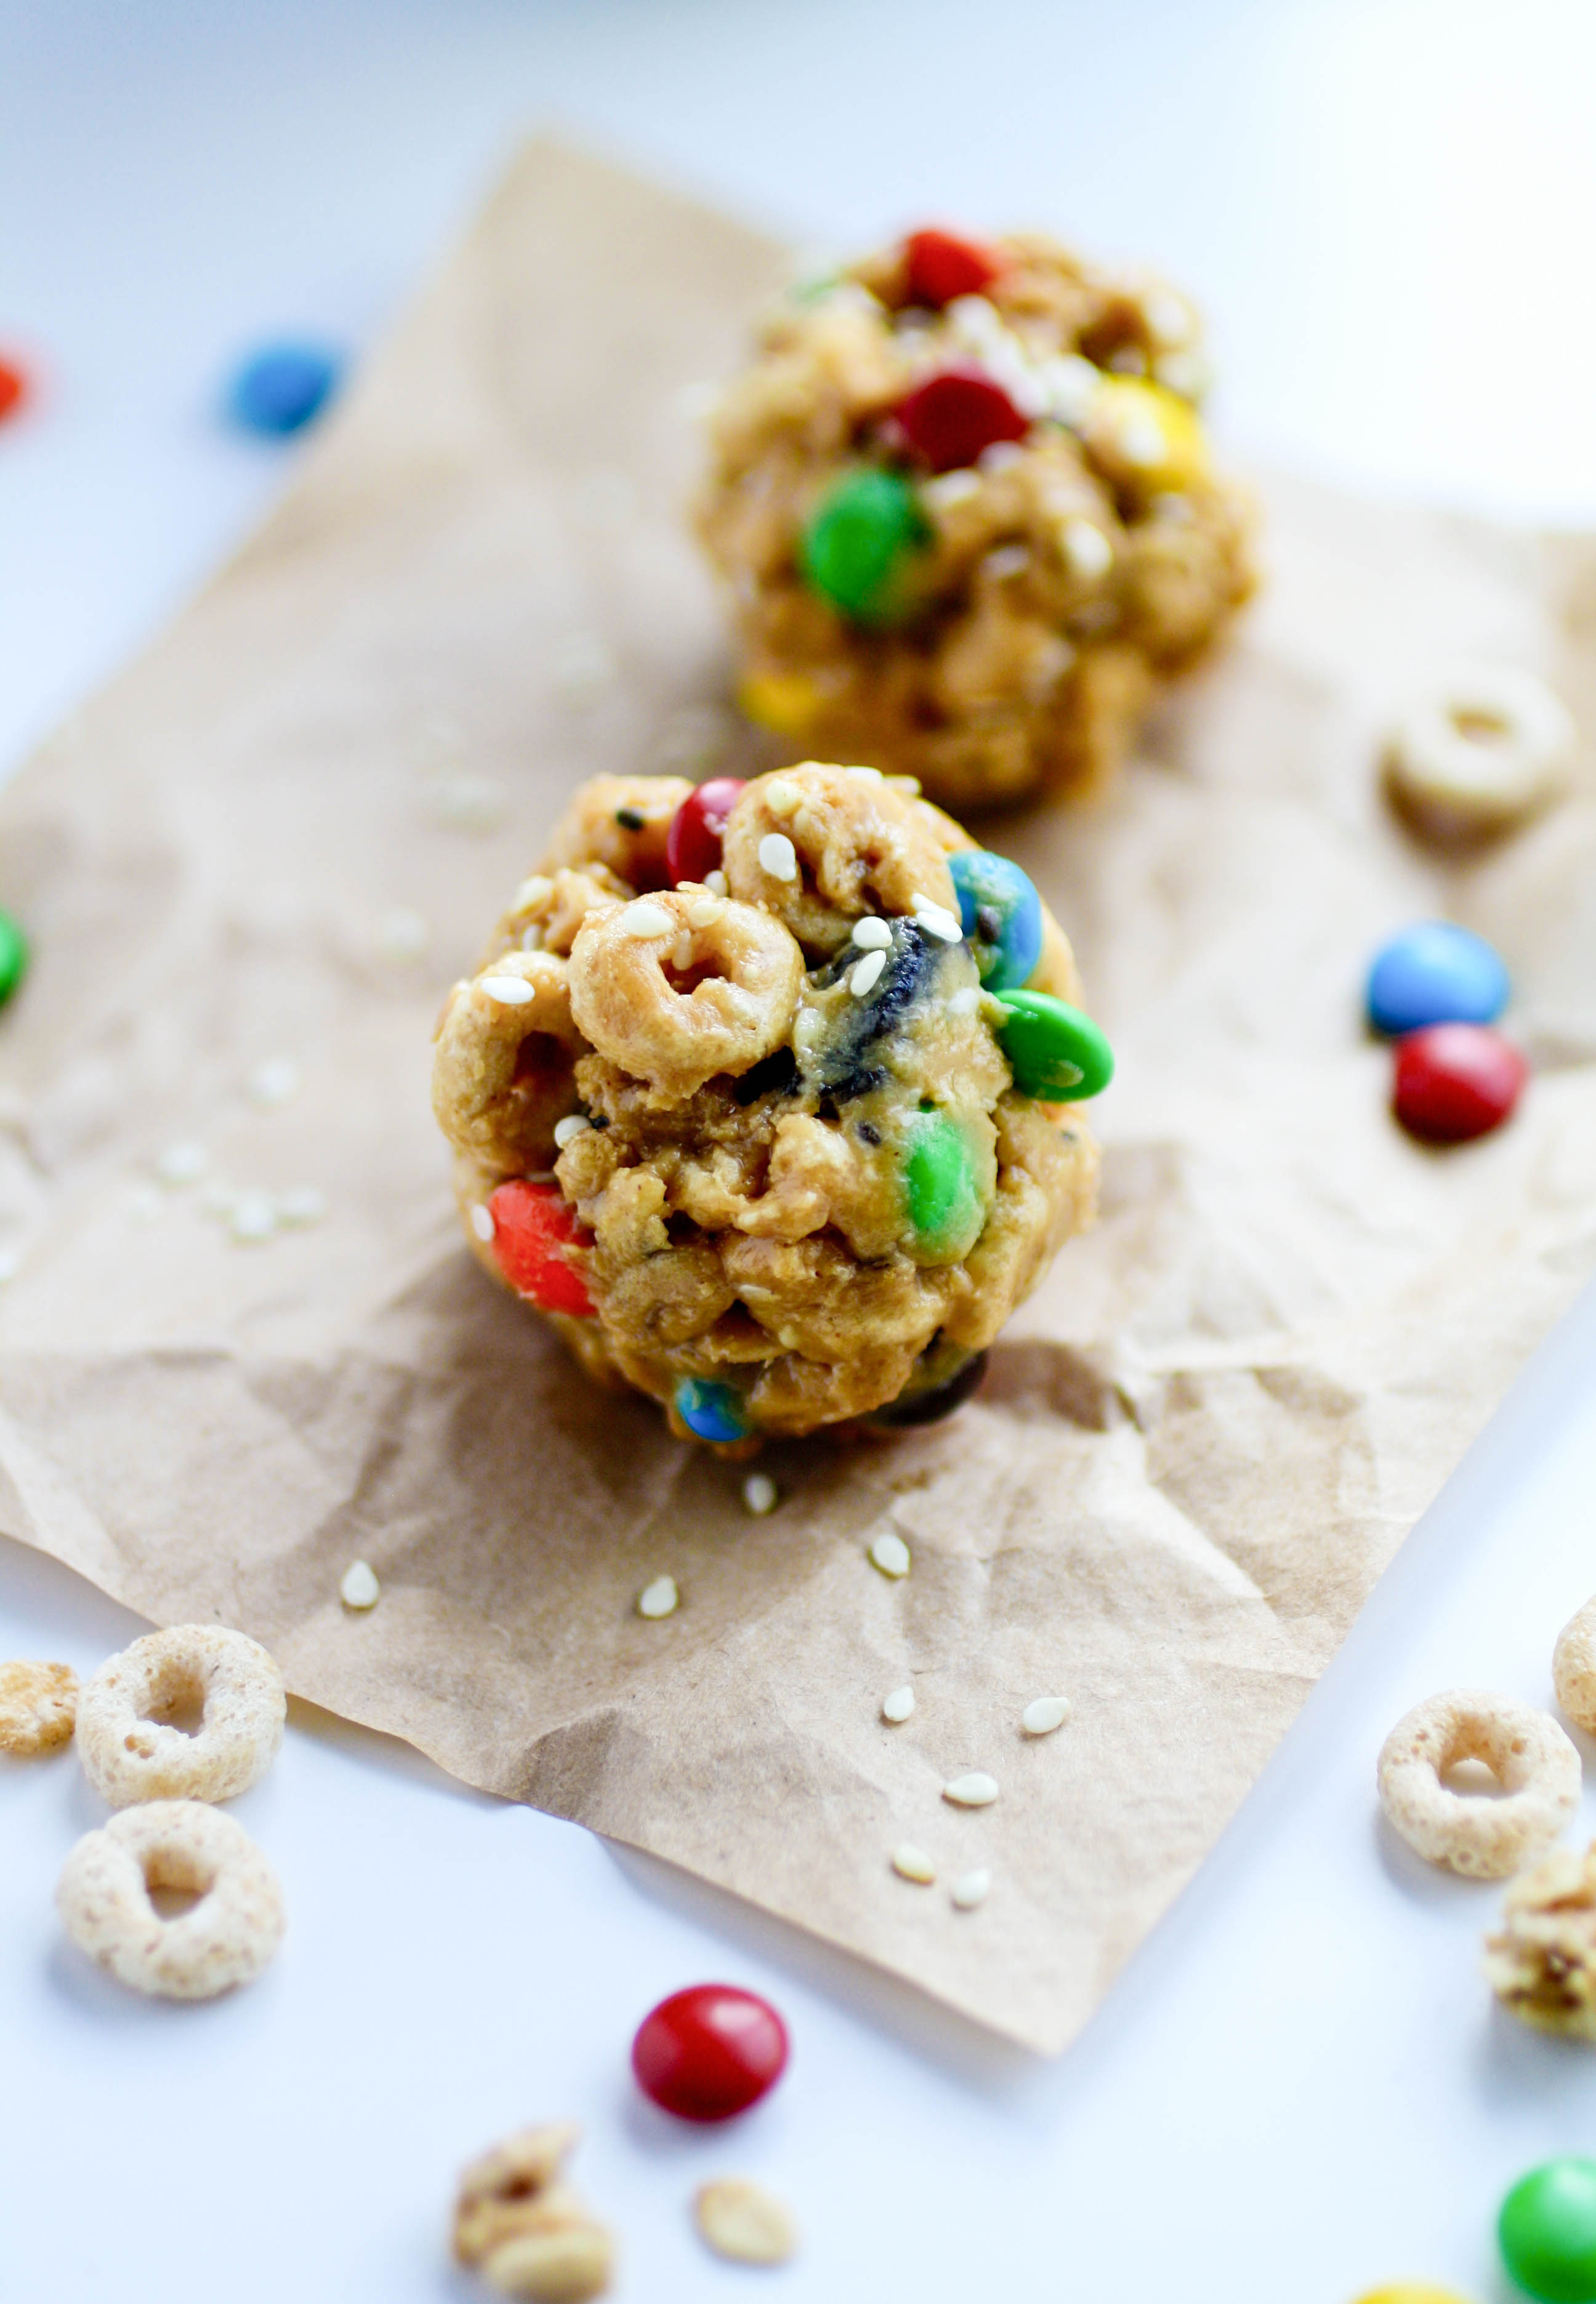 No-Bake Monster Cereal Bites are fun to make as anytime treats! You'll love these easy-to-make snacks!